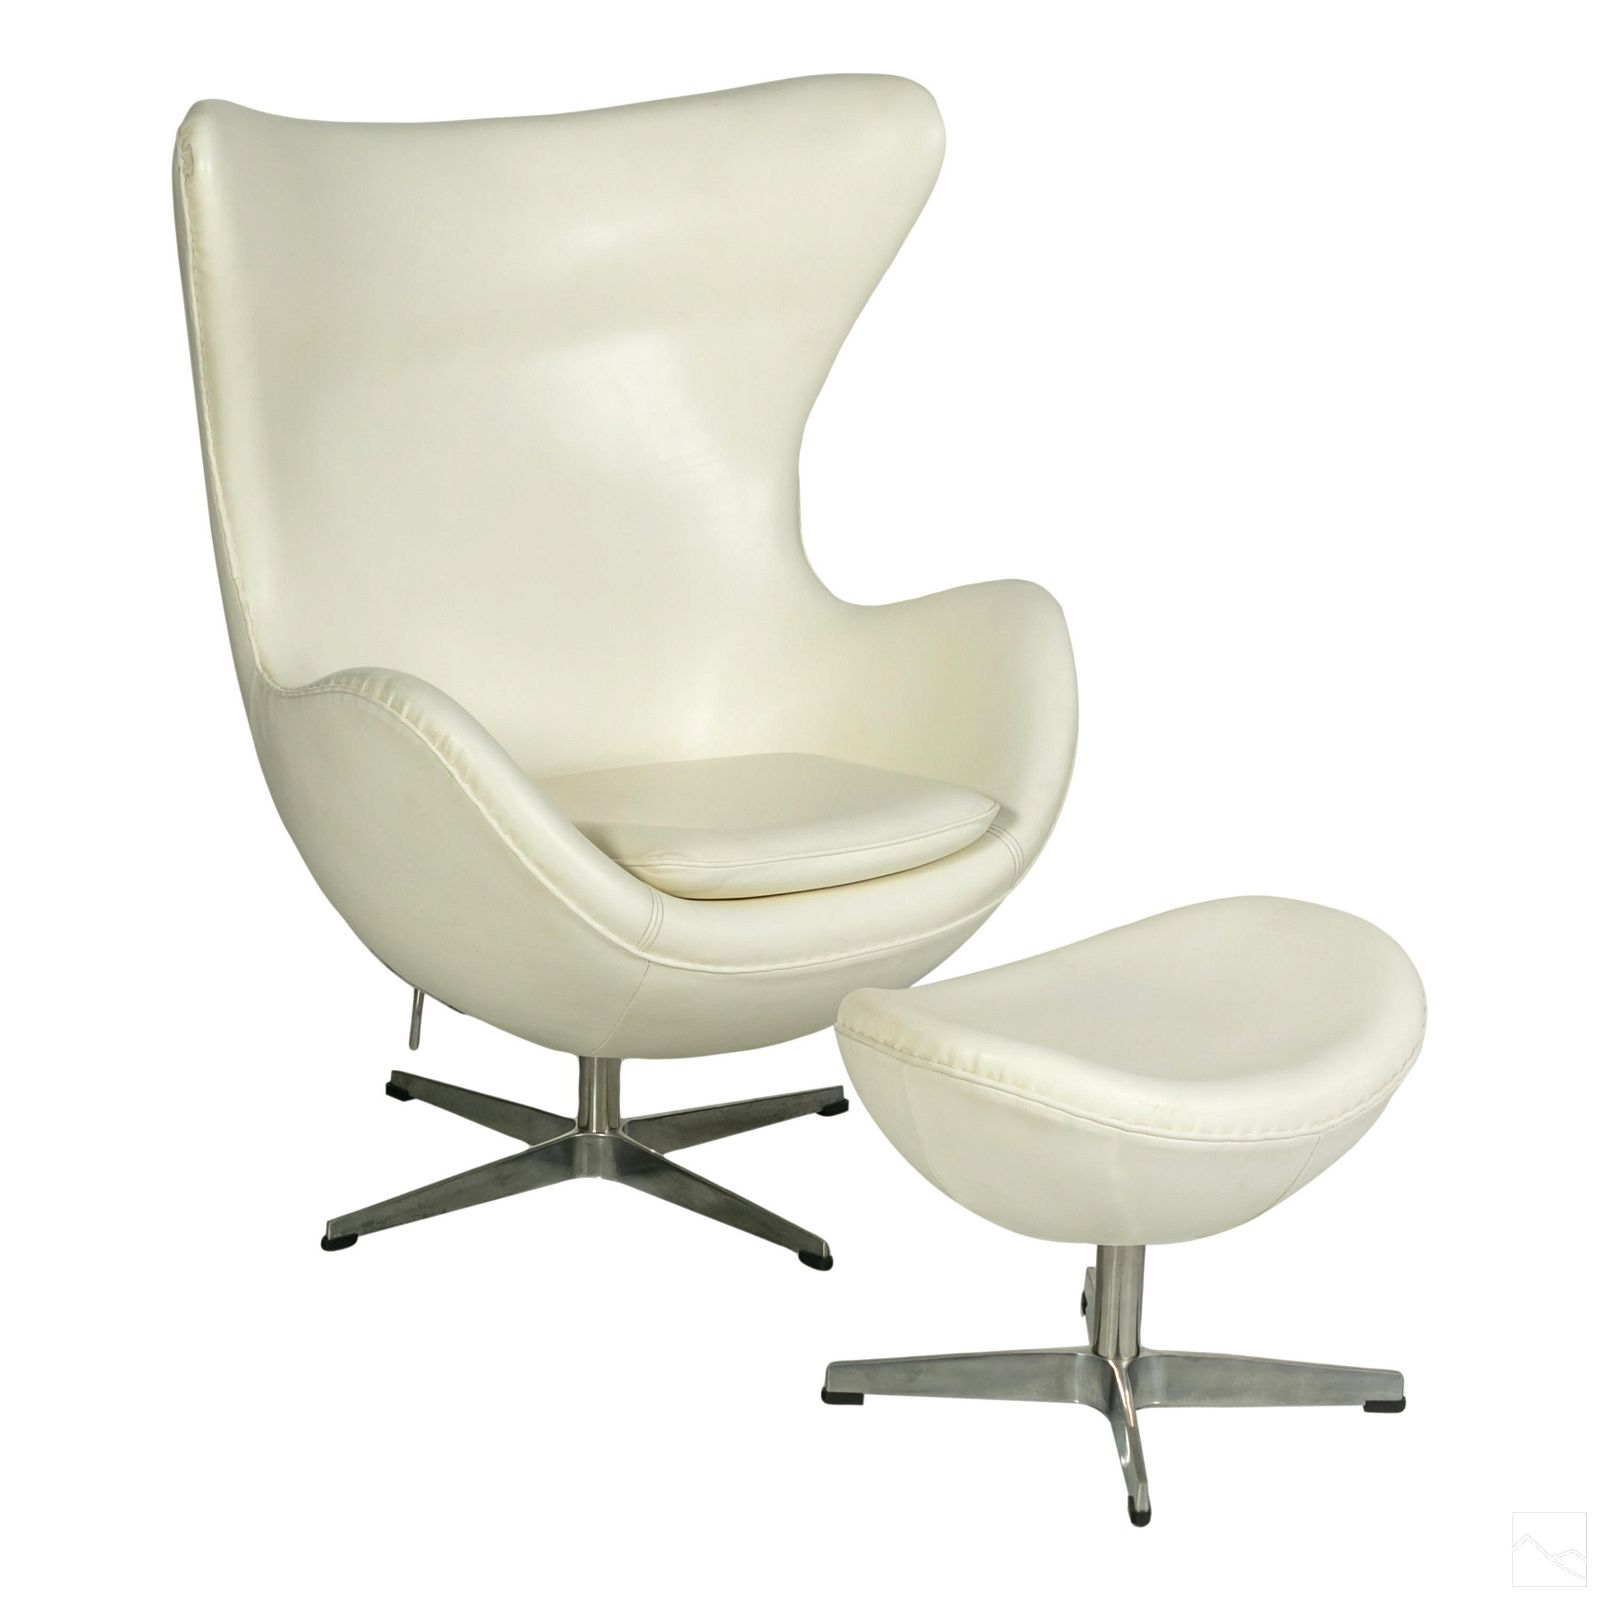 Egg Chair with Ottoman Designed by Arne Jacobsen